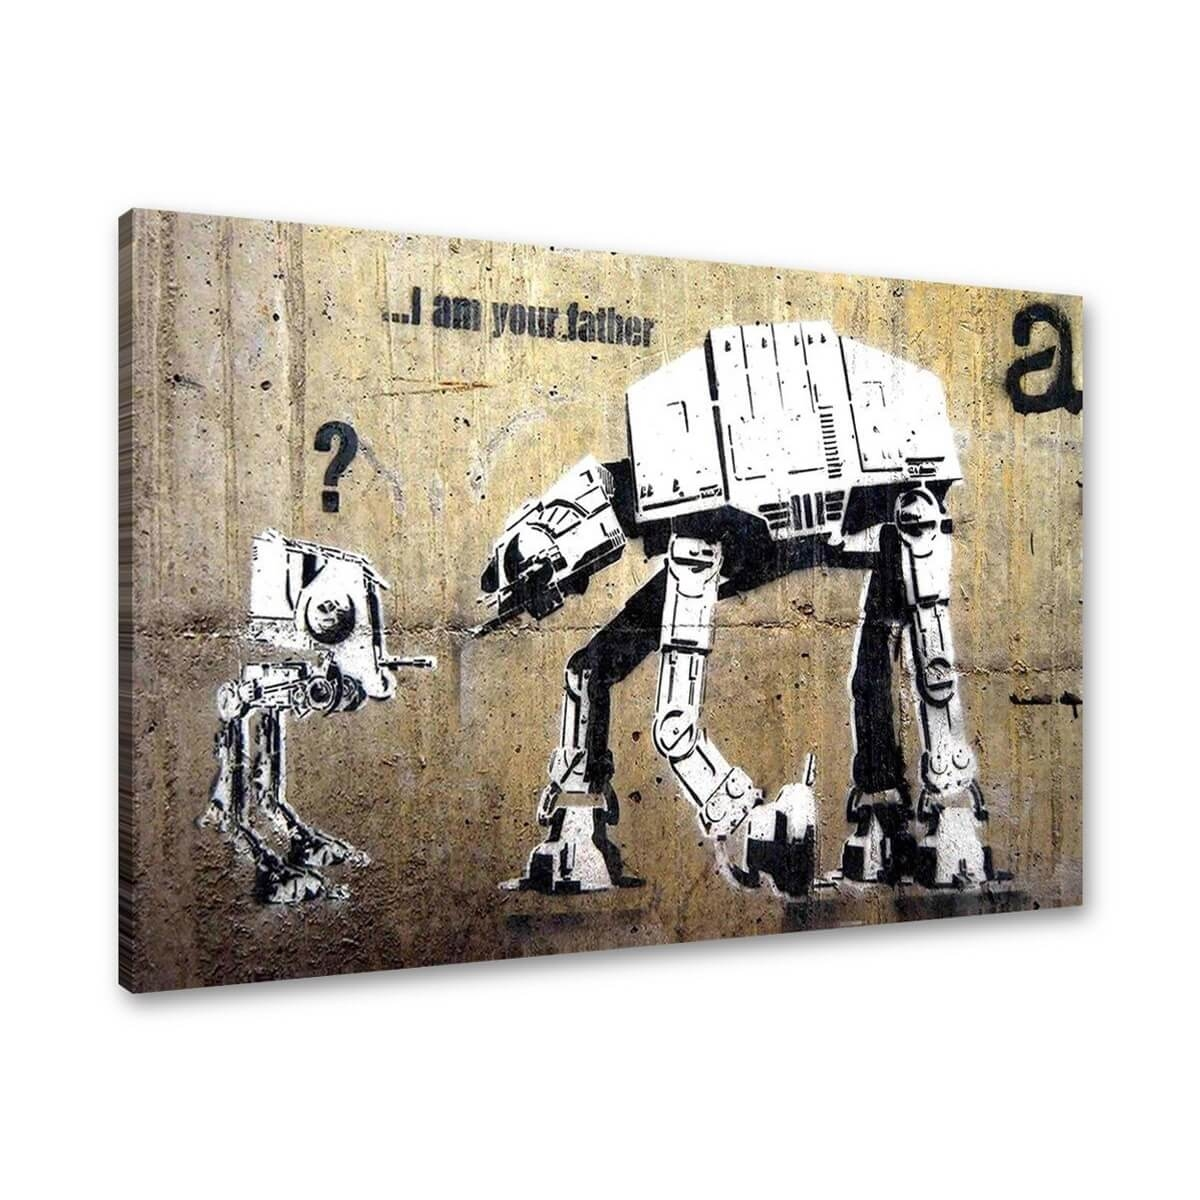 Tablou canvas graffiti arta stradala banksy i am your father pentru decor,  rama lemn, 80x60cm,  VSR4168